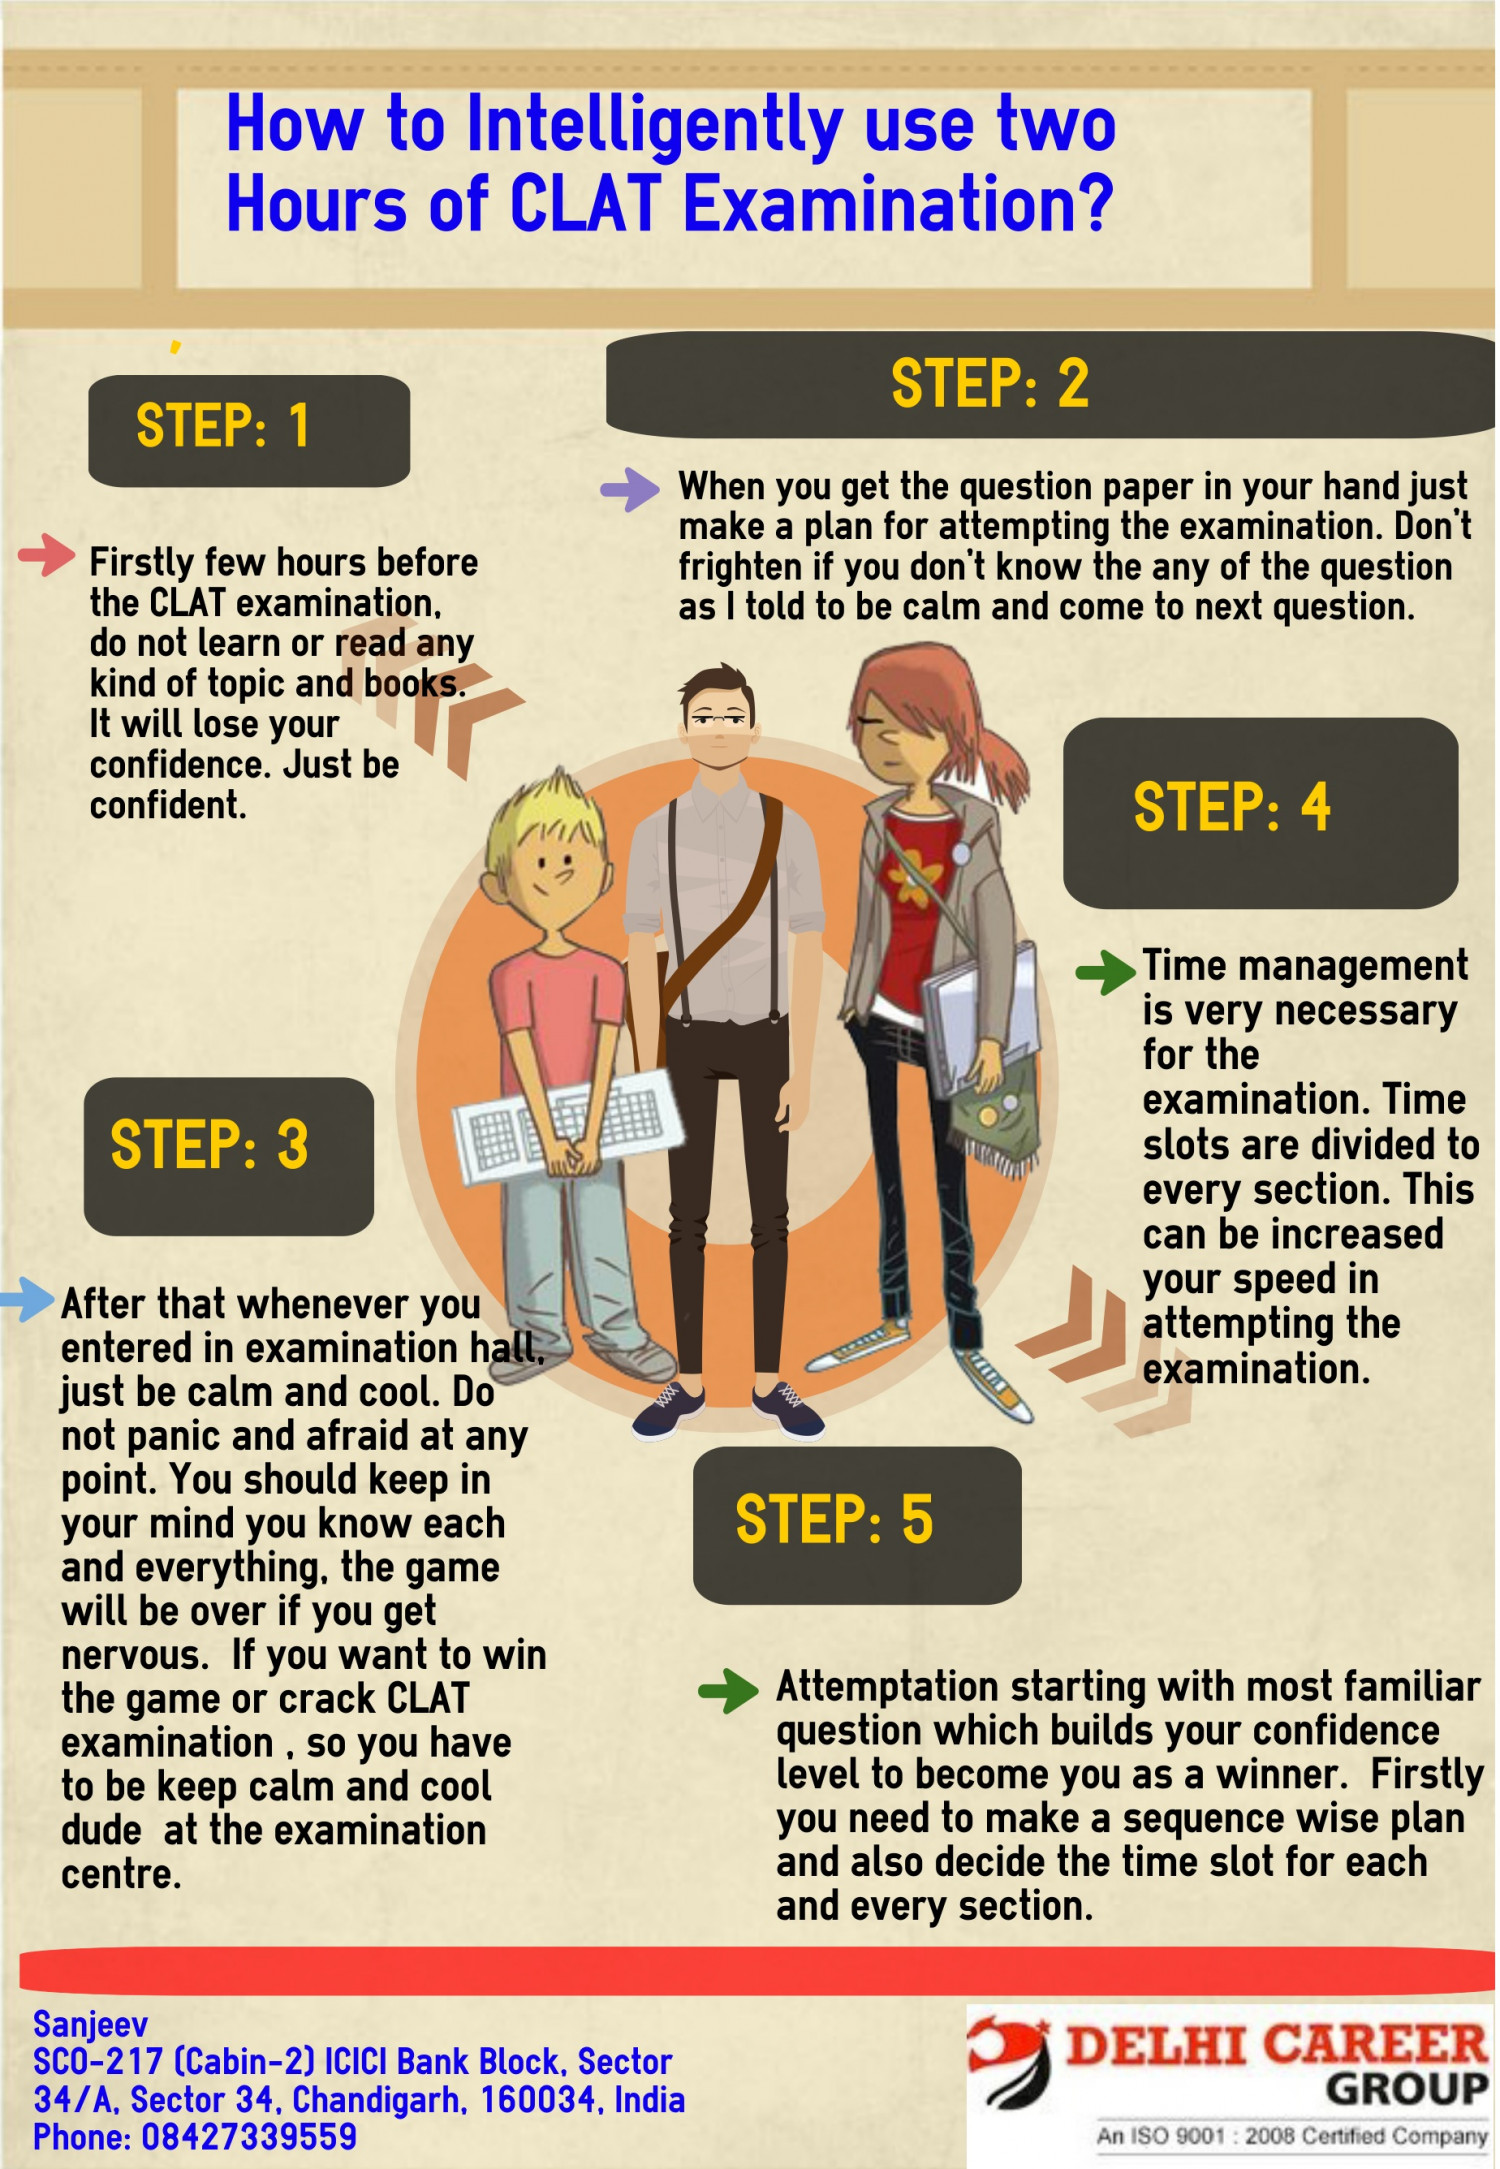 How to Intelligently use two Hours of CLAT Examination? Infographic